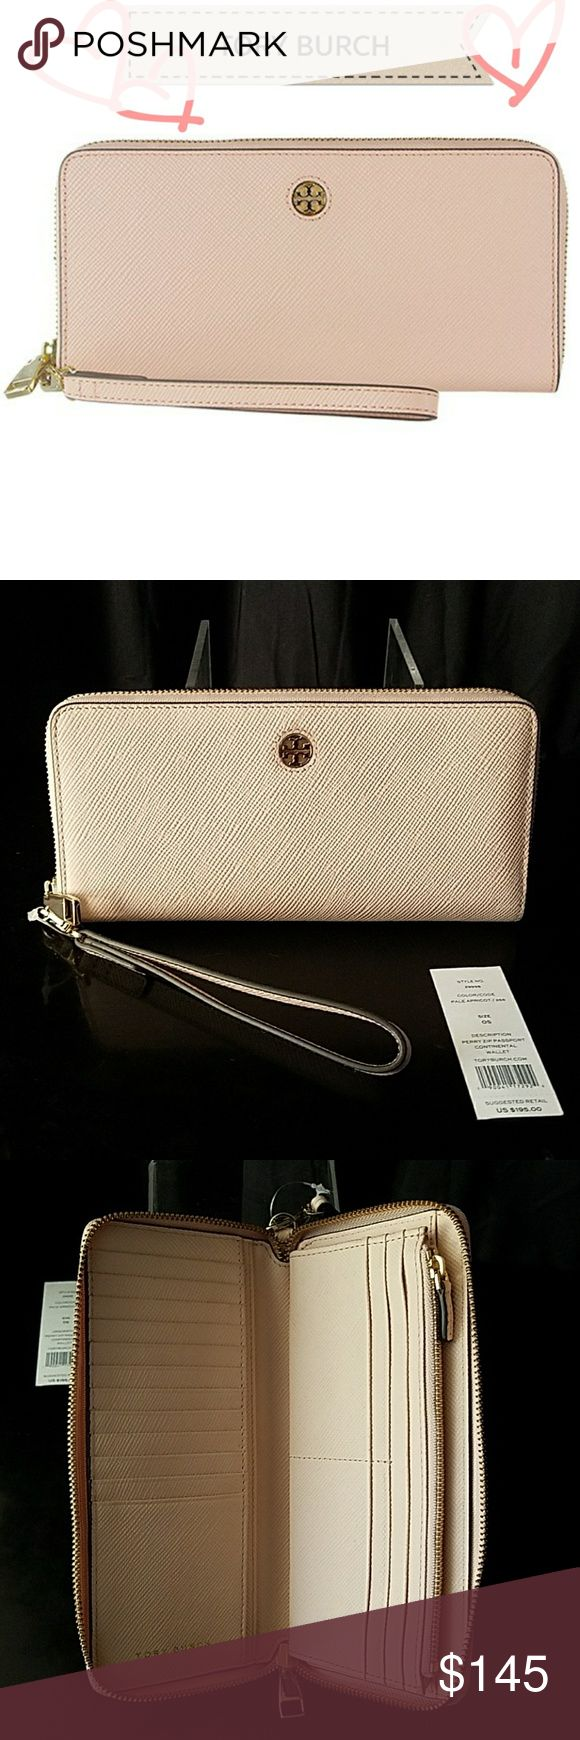 NWT Tory Burch Perry Zip Continental Wallet Brand new with tag, never used, perfect condition.  Tory Burch Perry Zip Passport Continental Wallet is designed to keep essentials organized. Made of leather, it opens flat for easy accessibility to belongings...  Style #29998 Color: Pale Apricot  Details: Leather Zip around Closure 16 credit card slots, 3 bill pockets, 1 large compartment, 1 interior zipper pocket Removable wristlet strap Gold Hardware Fits iPhone, Galaxy etc..  Msrp $195 Tory…